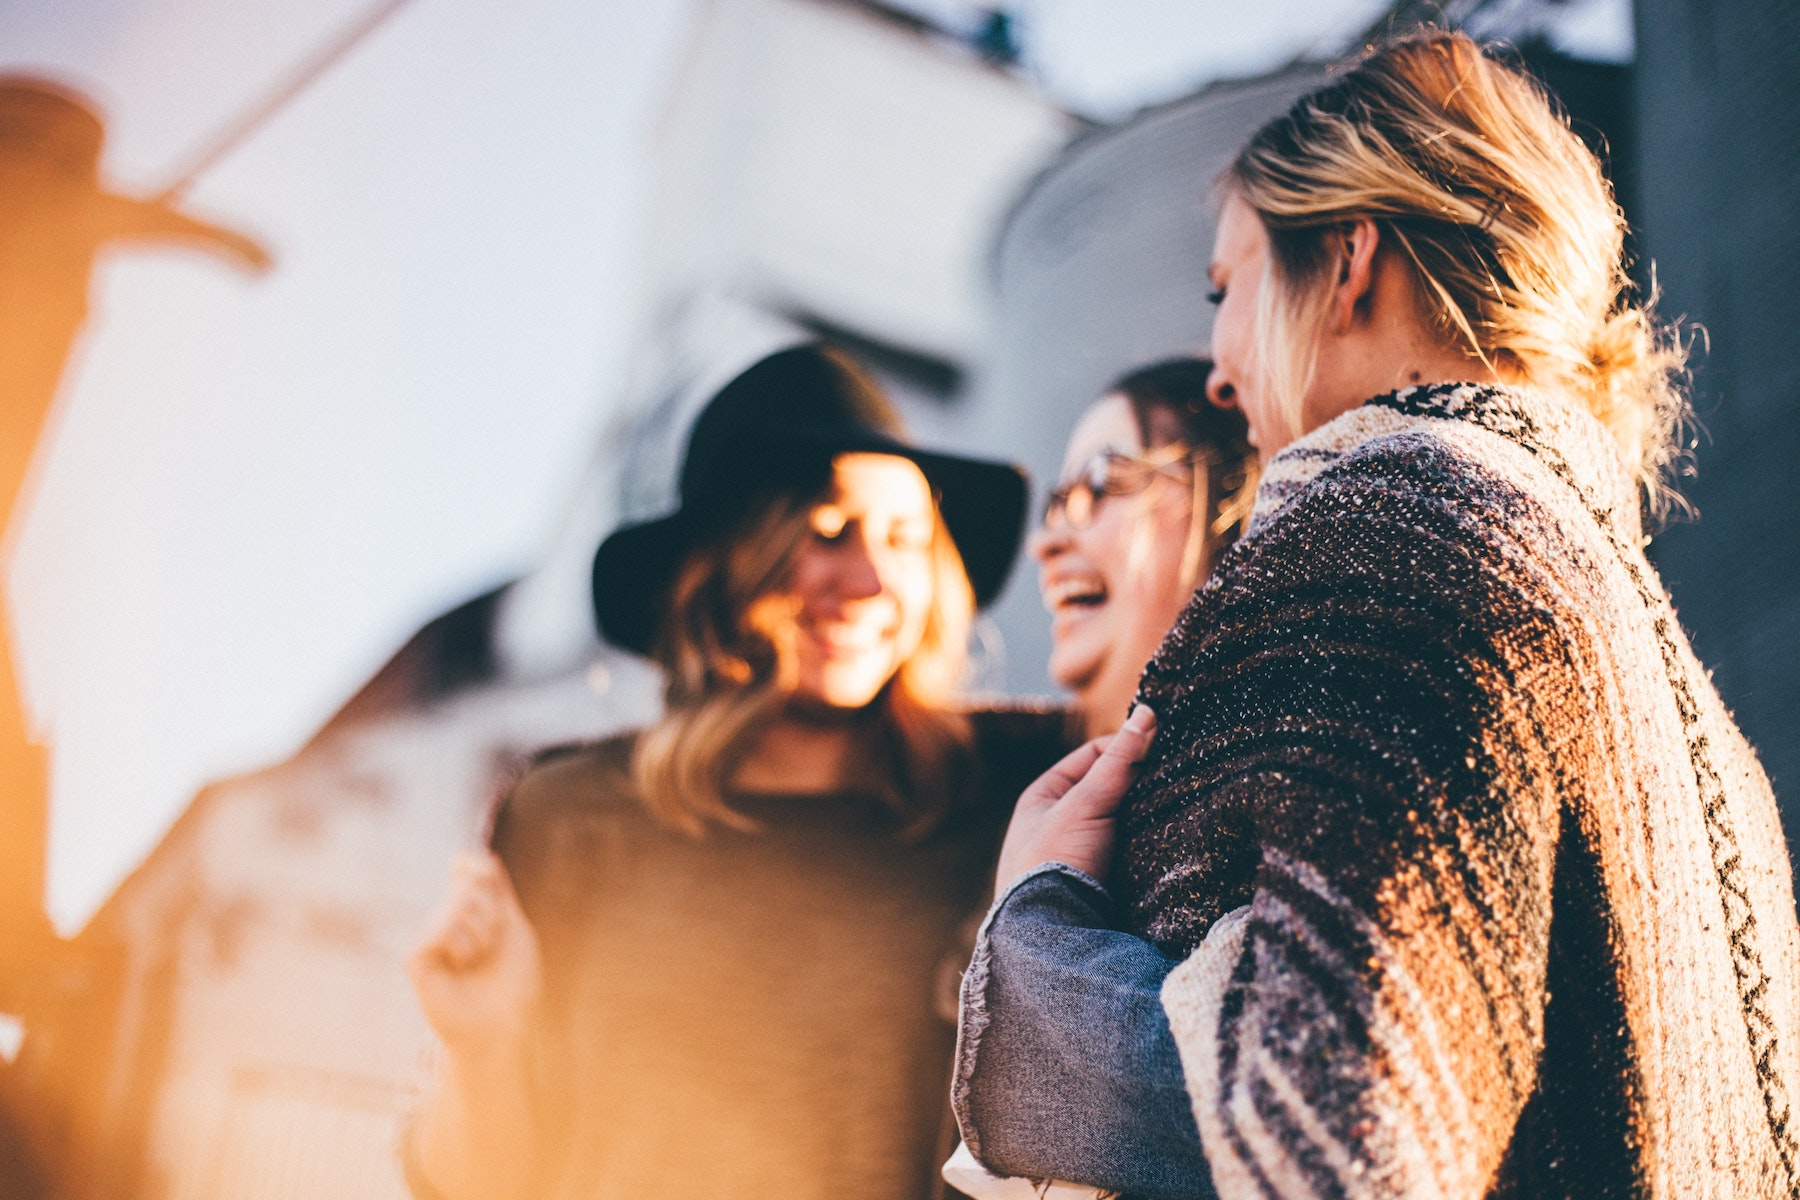 It's Not Just You: Making Other Adult Friends Is Hard